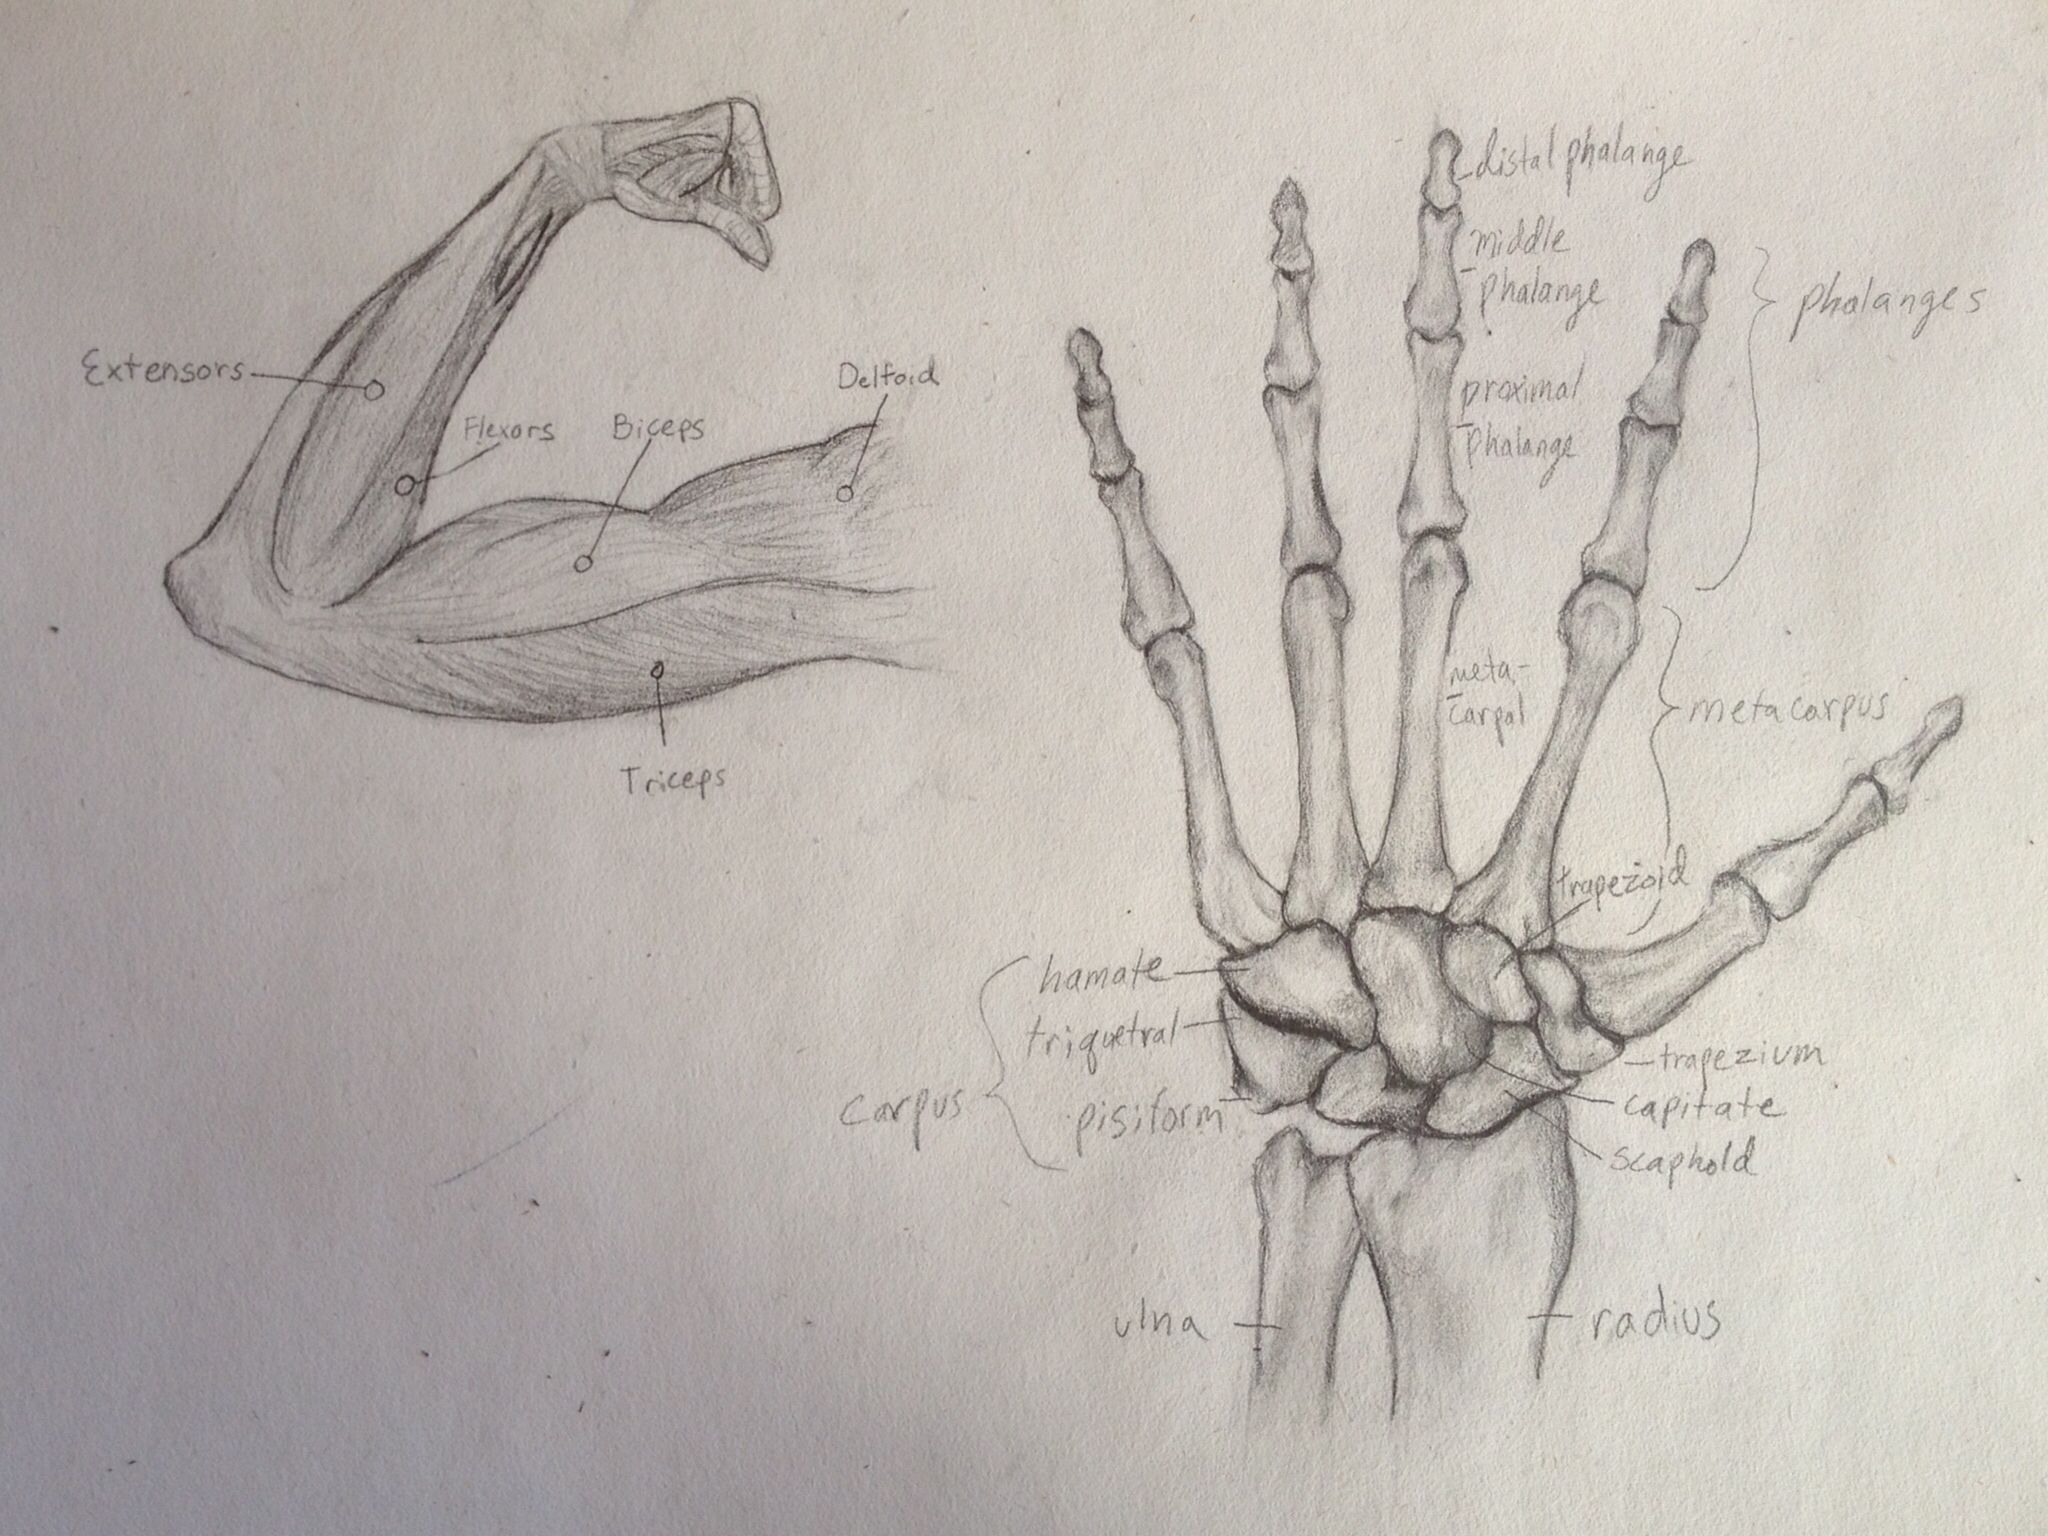 Arm muscle and hand bones anatomy pencil drawing reference | My Art ...